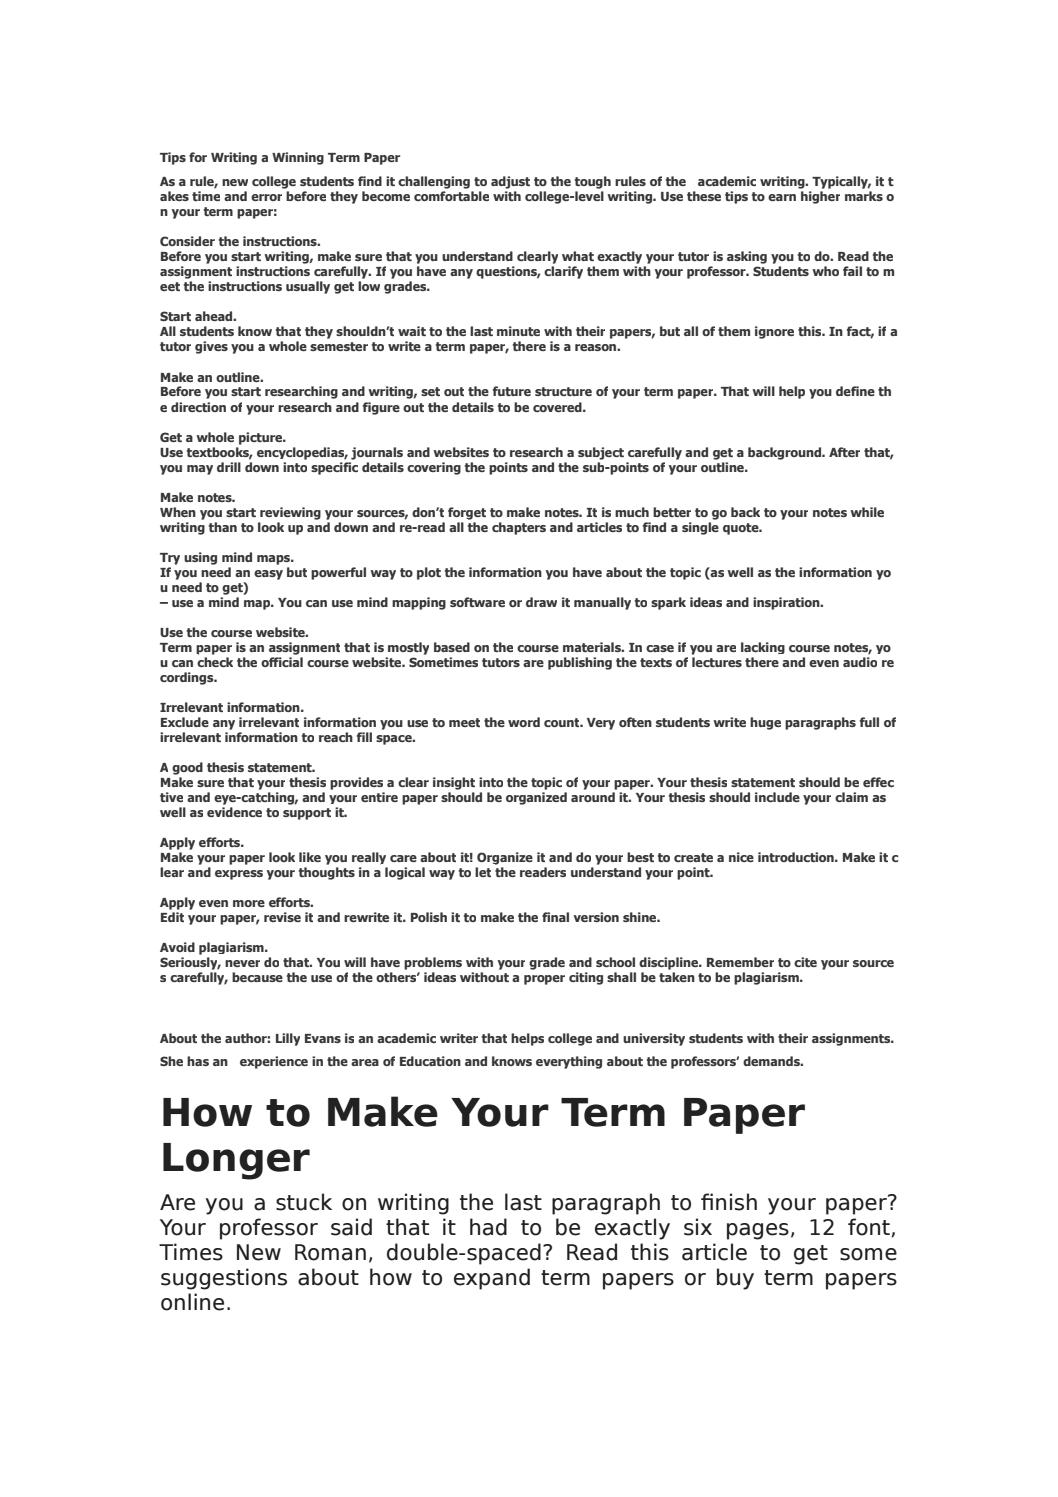 013 How To Make An Outline For Term Paper Research Page 1 Amazing A Create Full